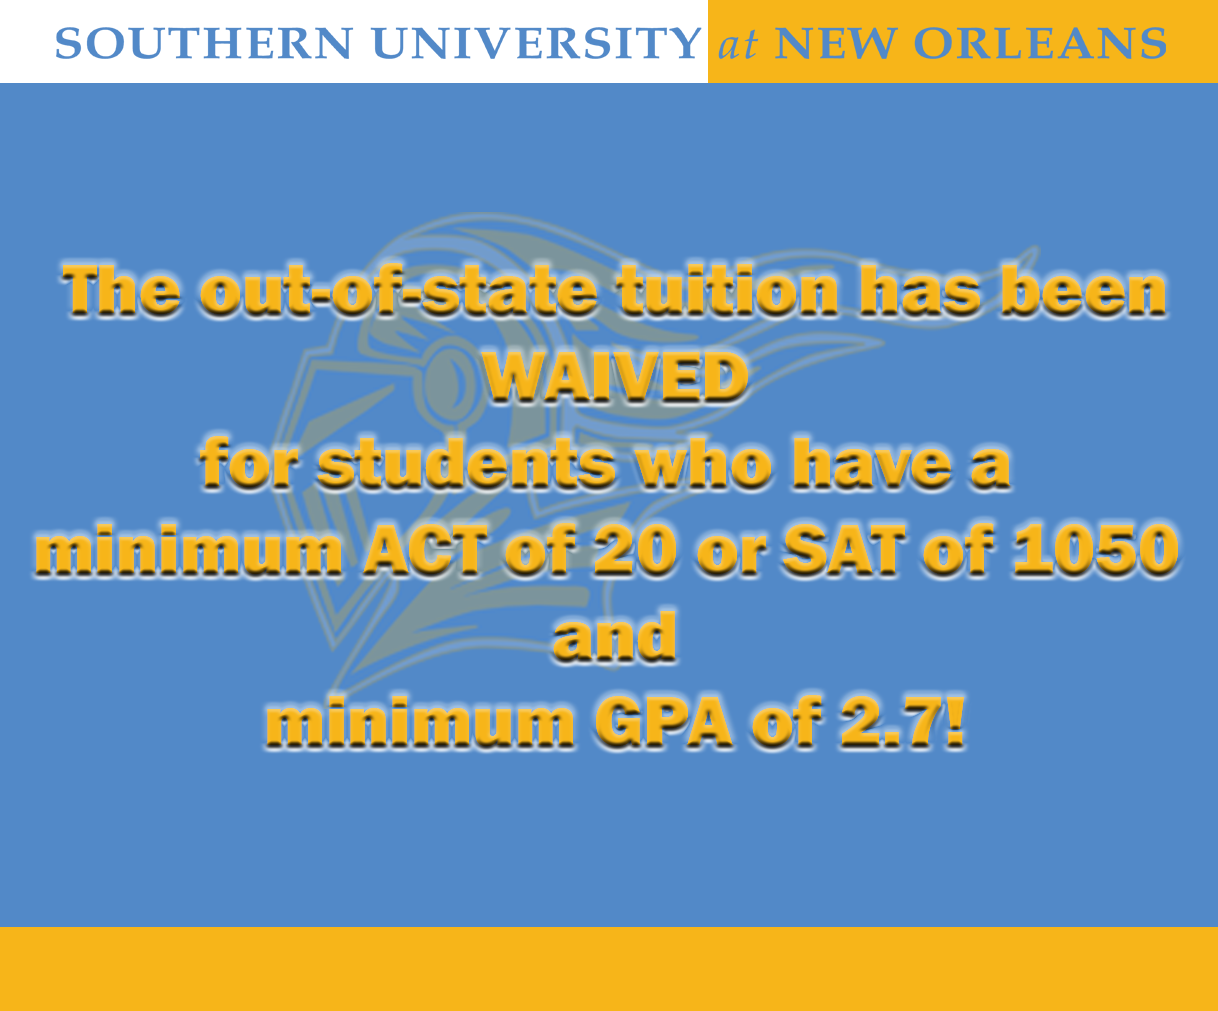 Student Tuition Waiver